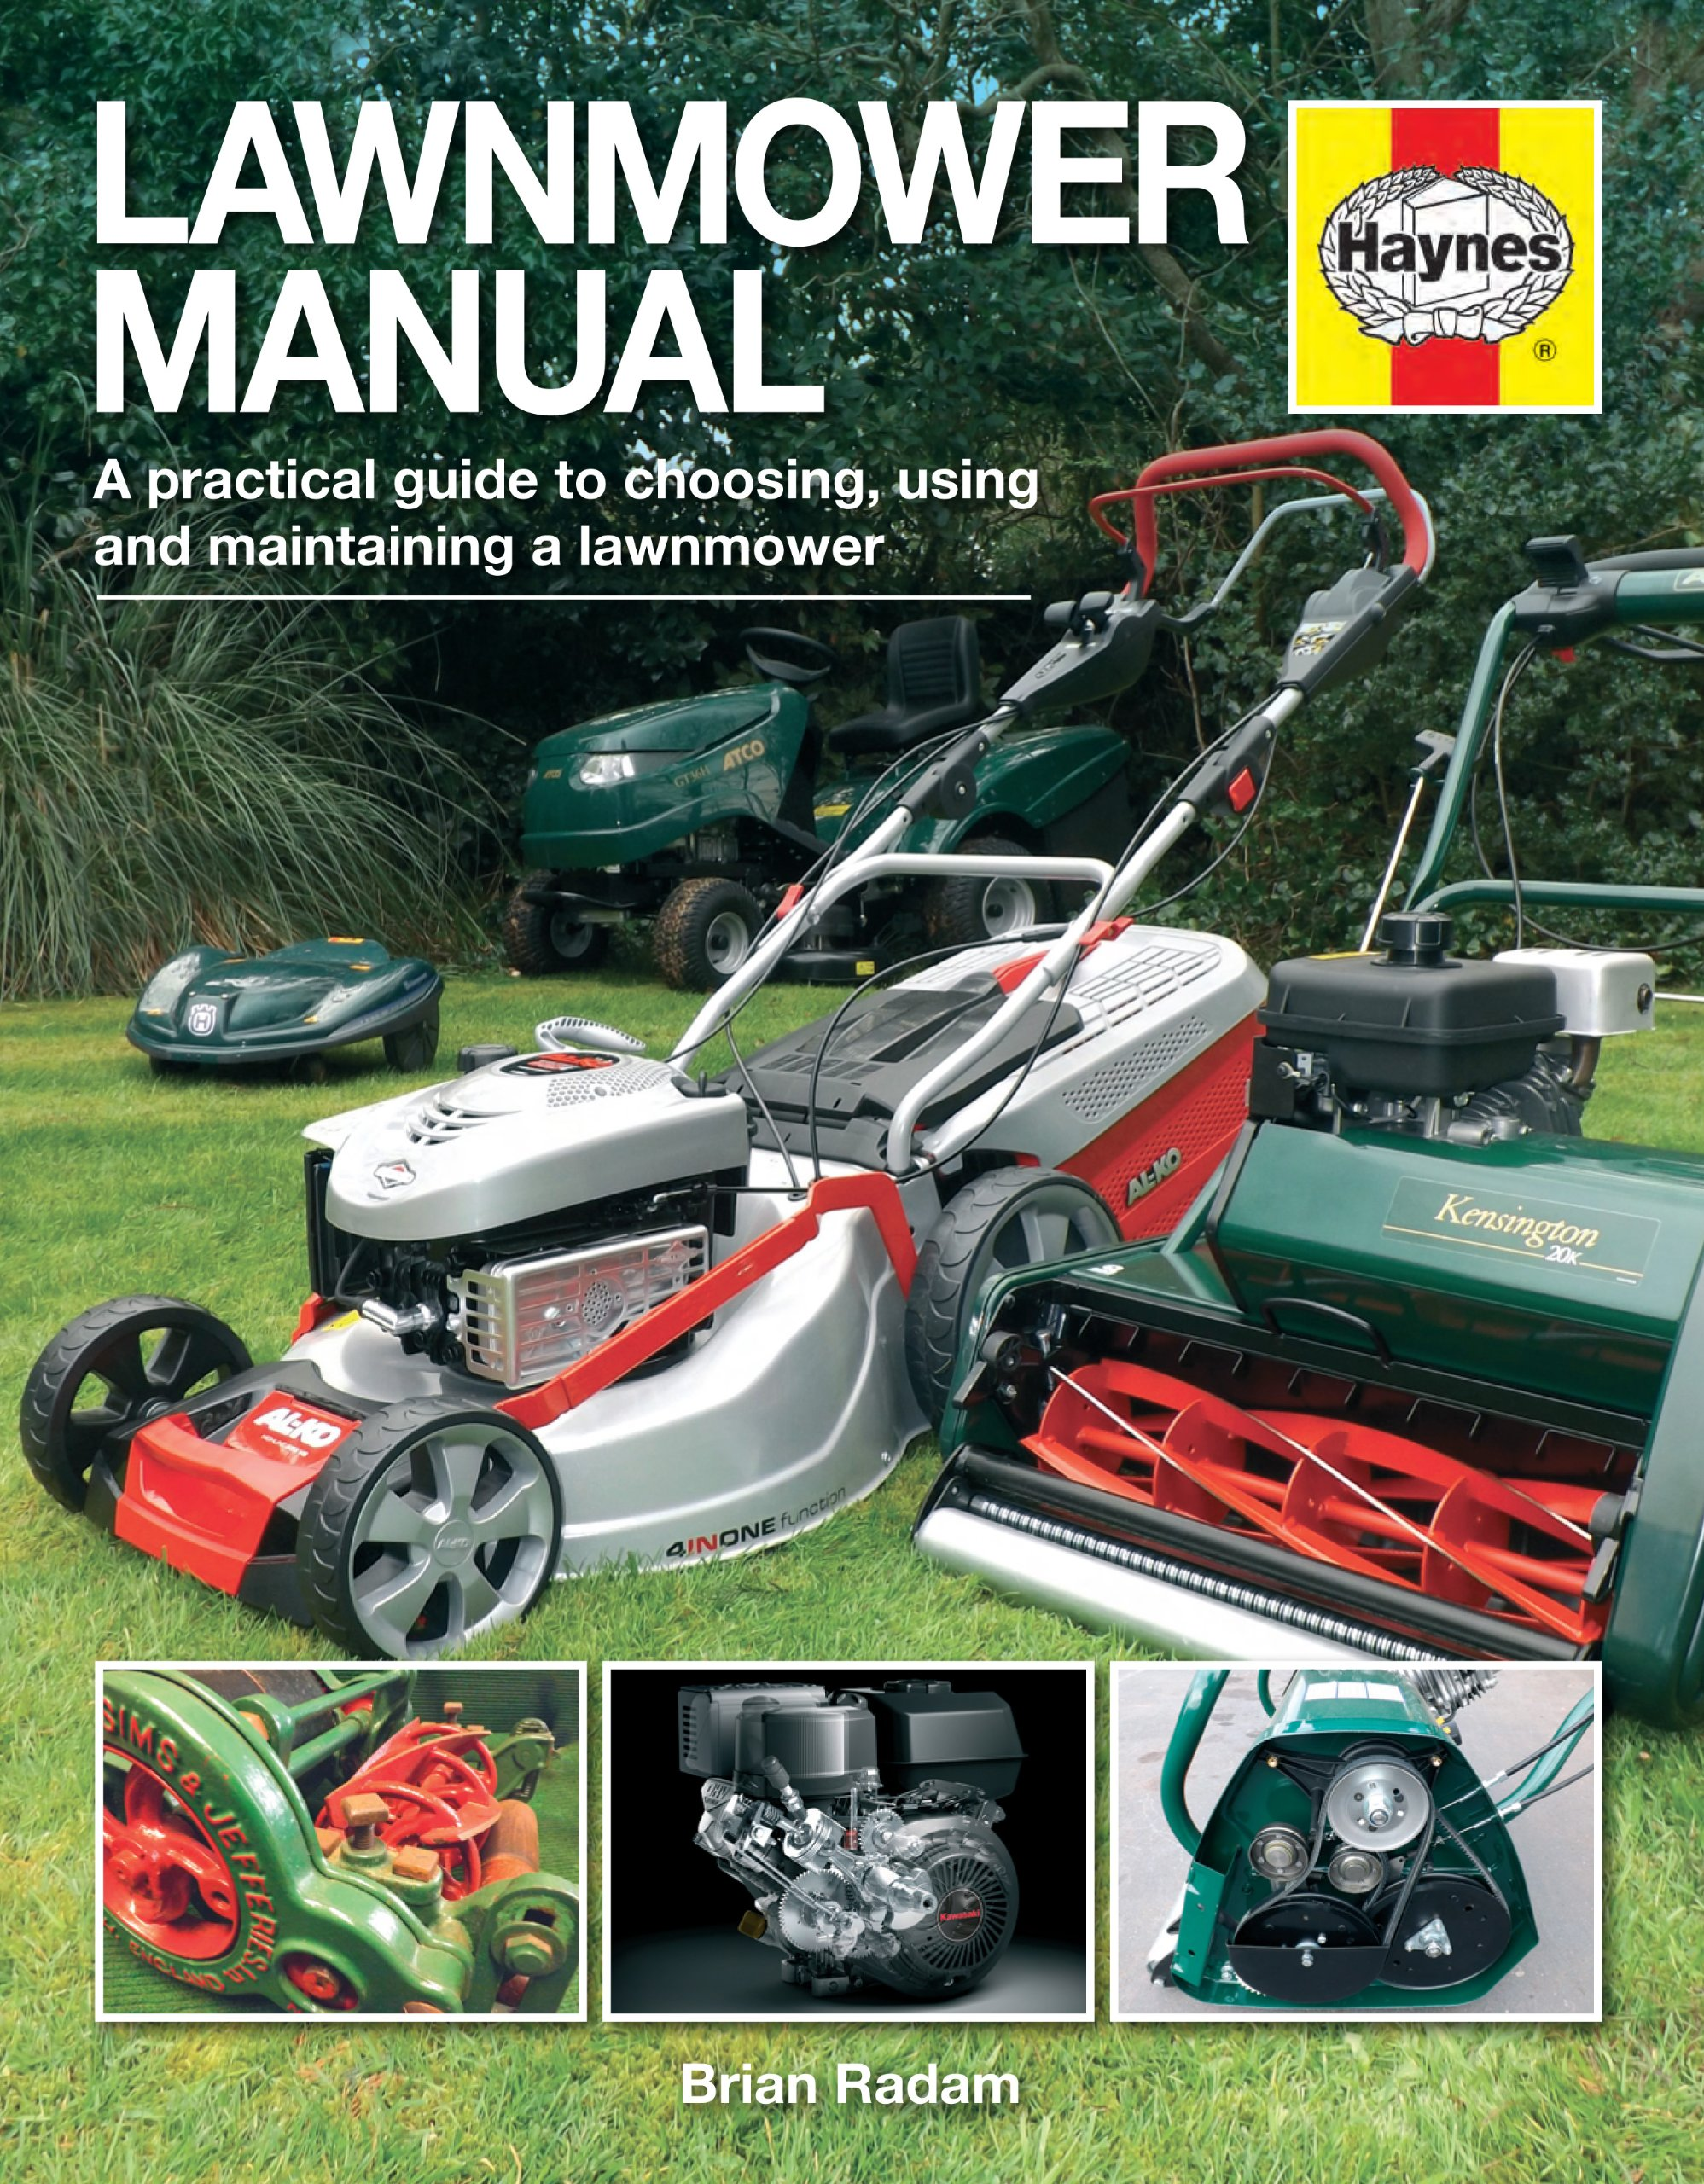 Lawnmower Manual: A practical guide to choosing, using and maintaining a  lawnmower (Haynes Manuals): Brian Radam: 9780857333087: Amazon.com: Books